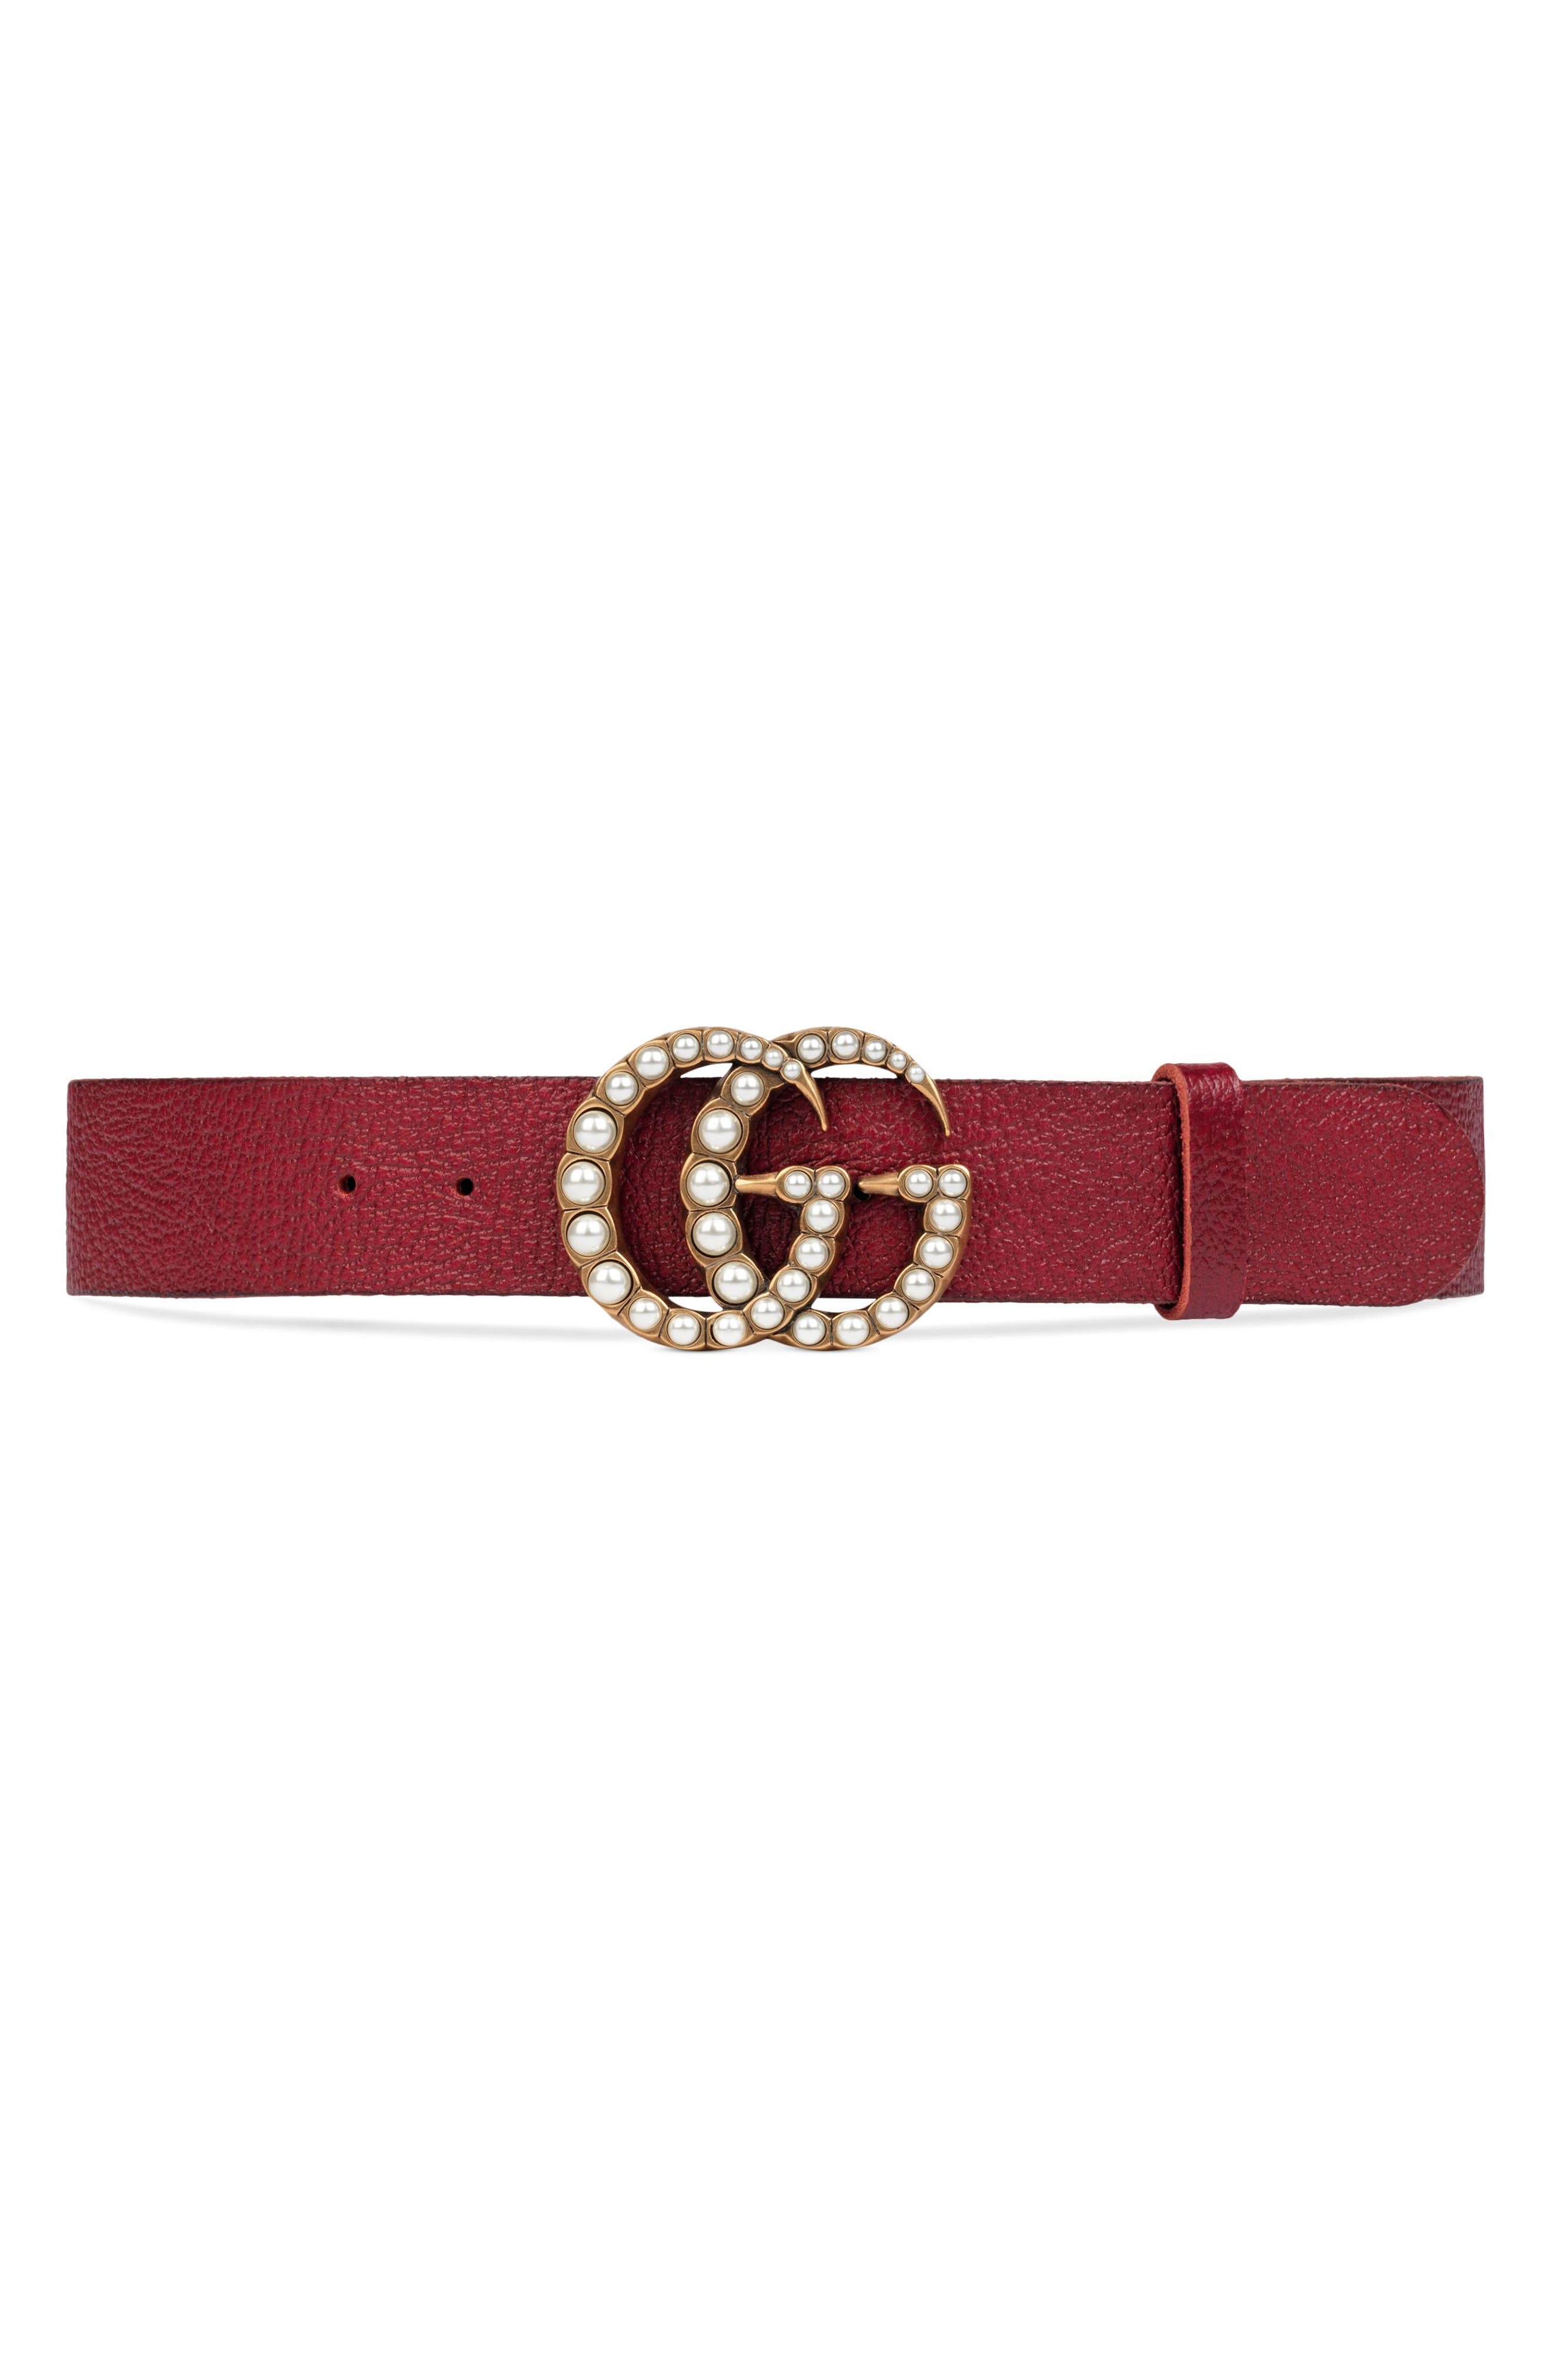 Main Image - Gucci Imitation Pearl Double-G Leather Belt